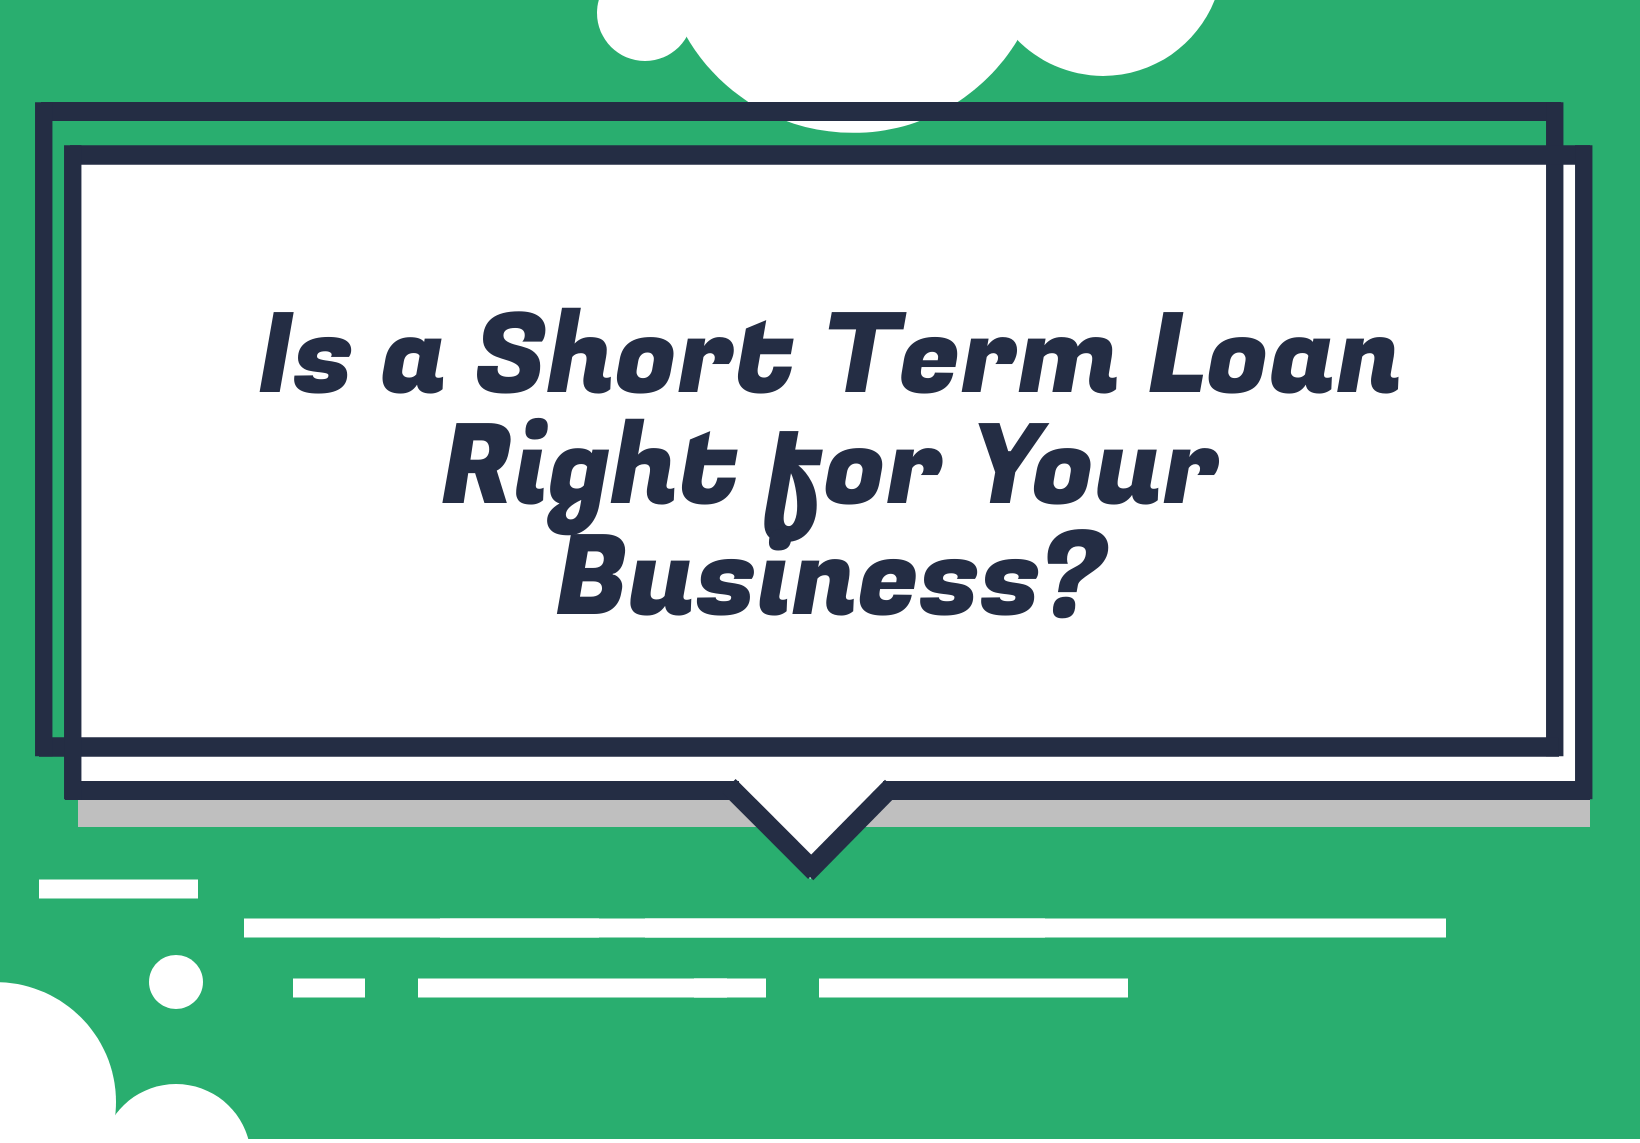 What is an Advantage of a Shorter Term Loan?